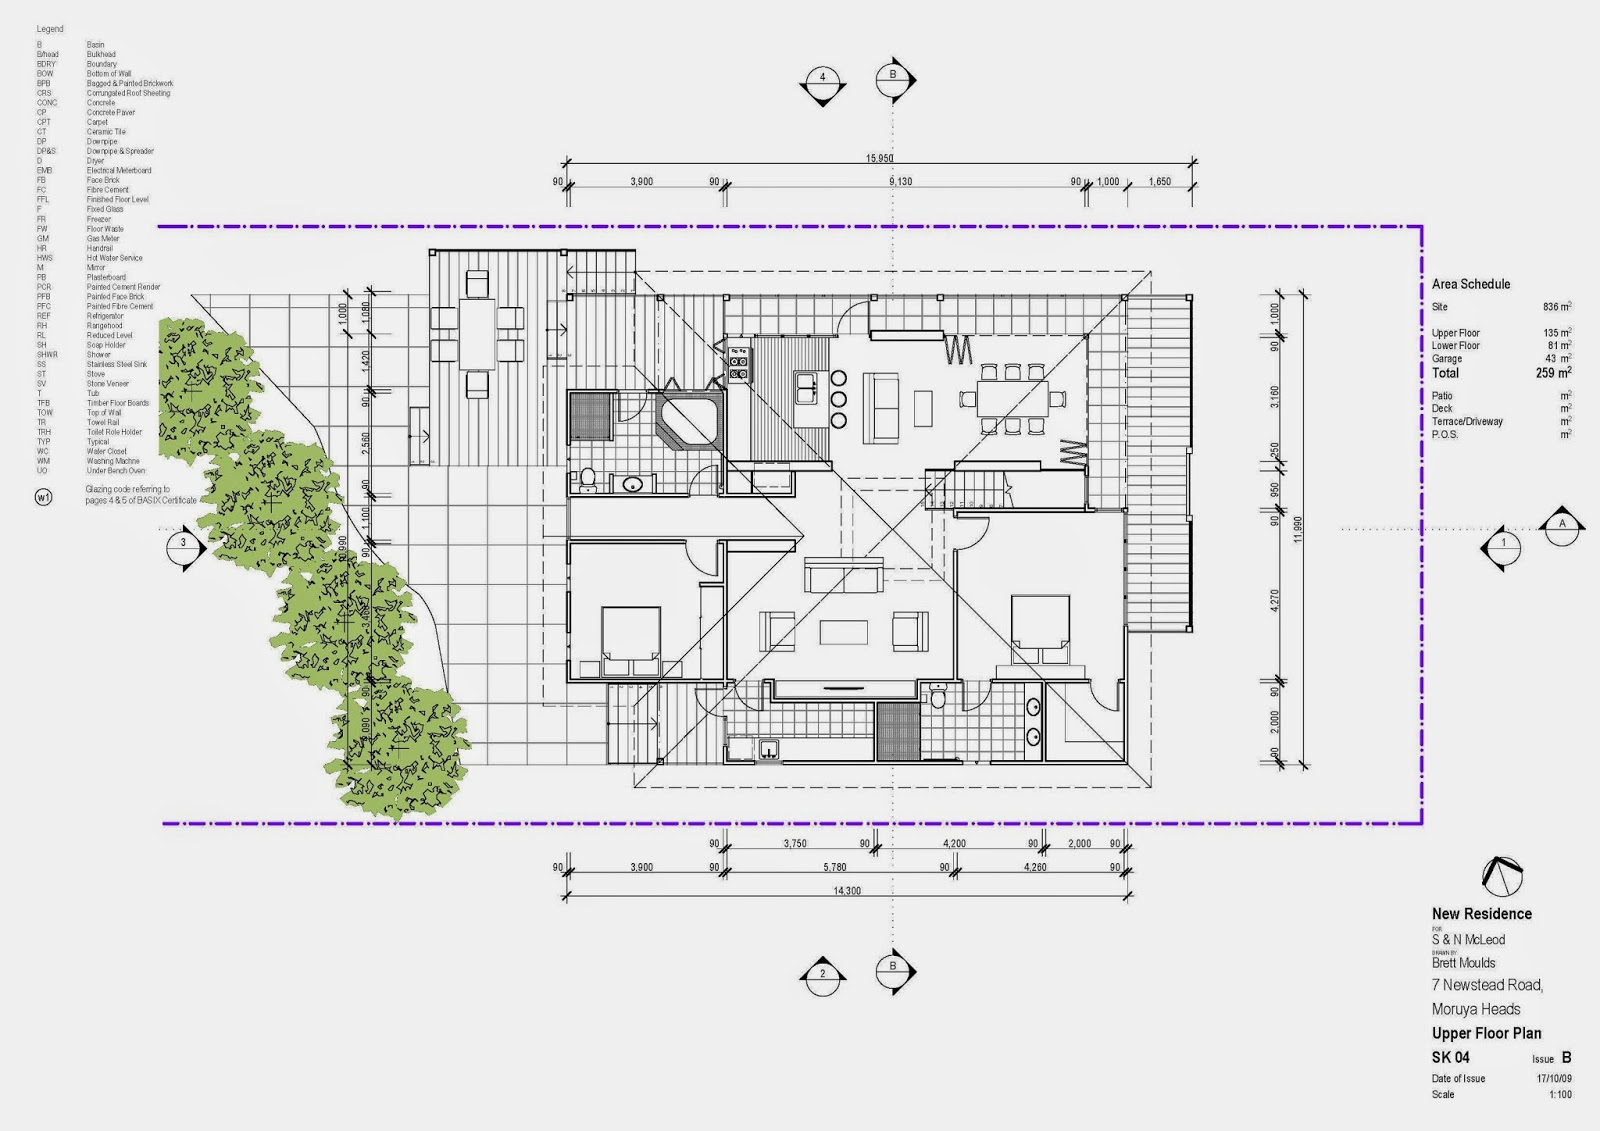 Architectural floor plan architectural floor plan for Architectural design floor plans